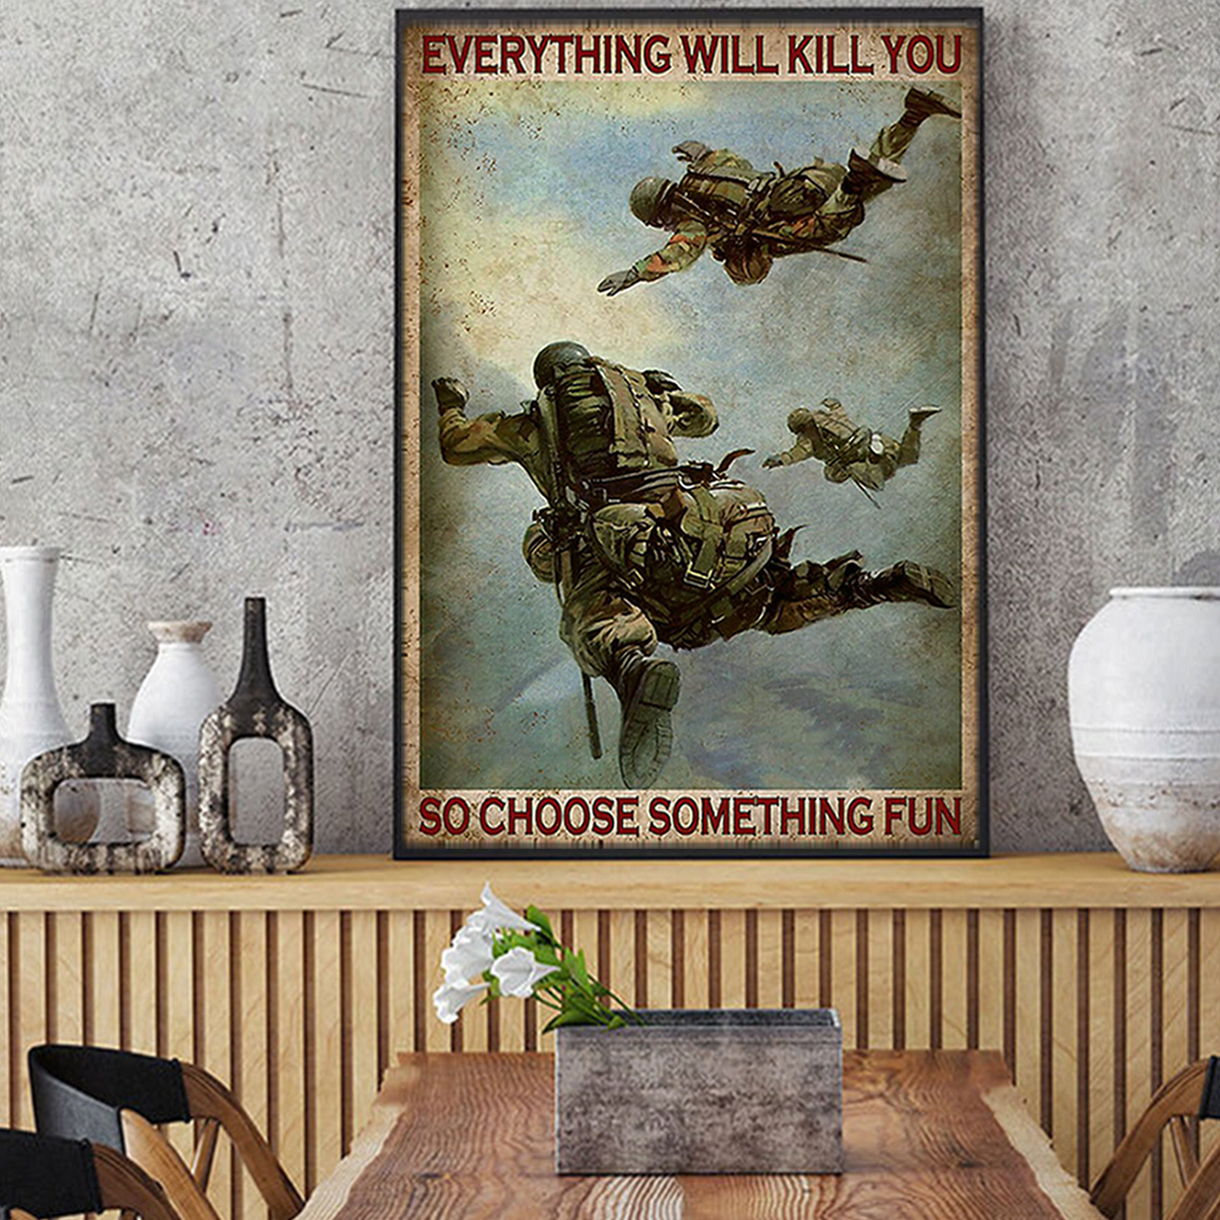 Air force soldier everything will kill you so choose something fun poster A1